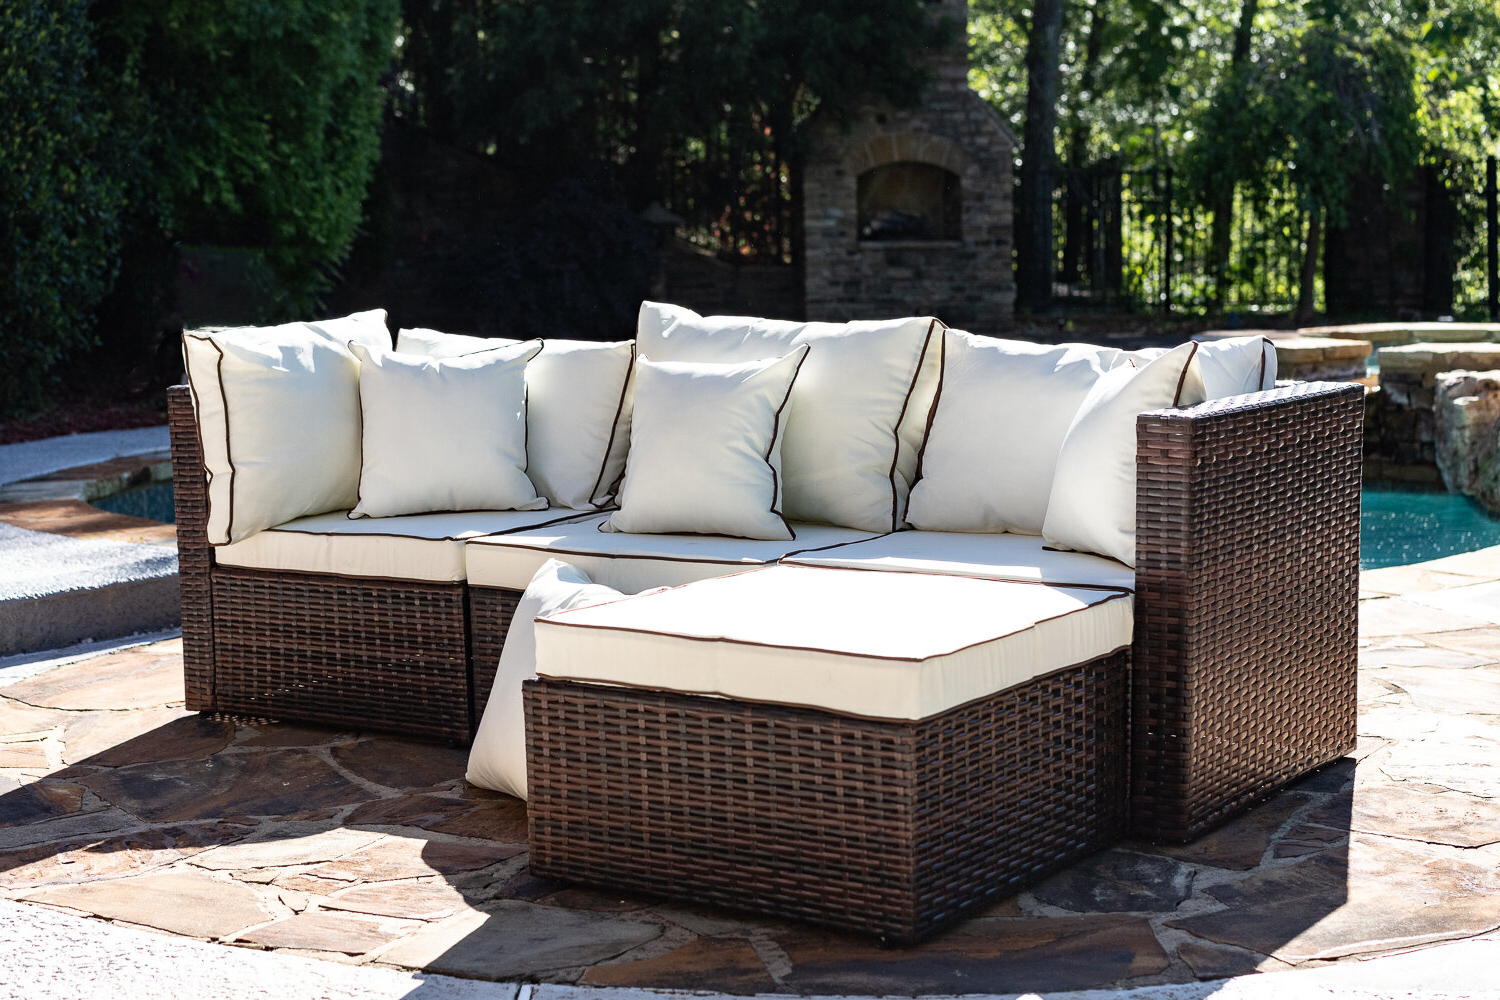 Three Posts Burruss Patio Sectional With Cushions & Reviews For Most Current Clifford Patio Sofas With Cushions (View 17 of 20)